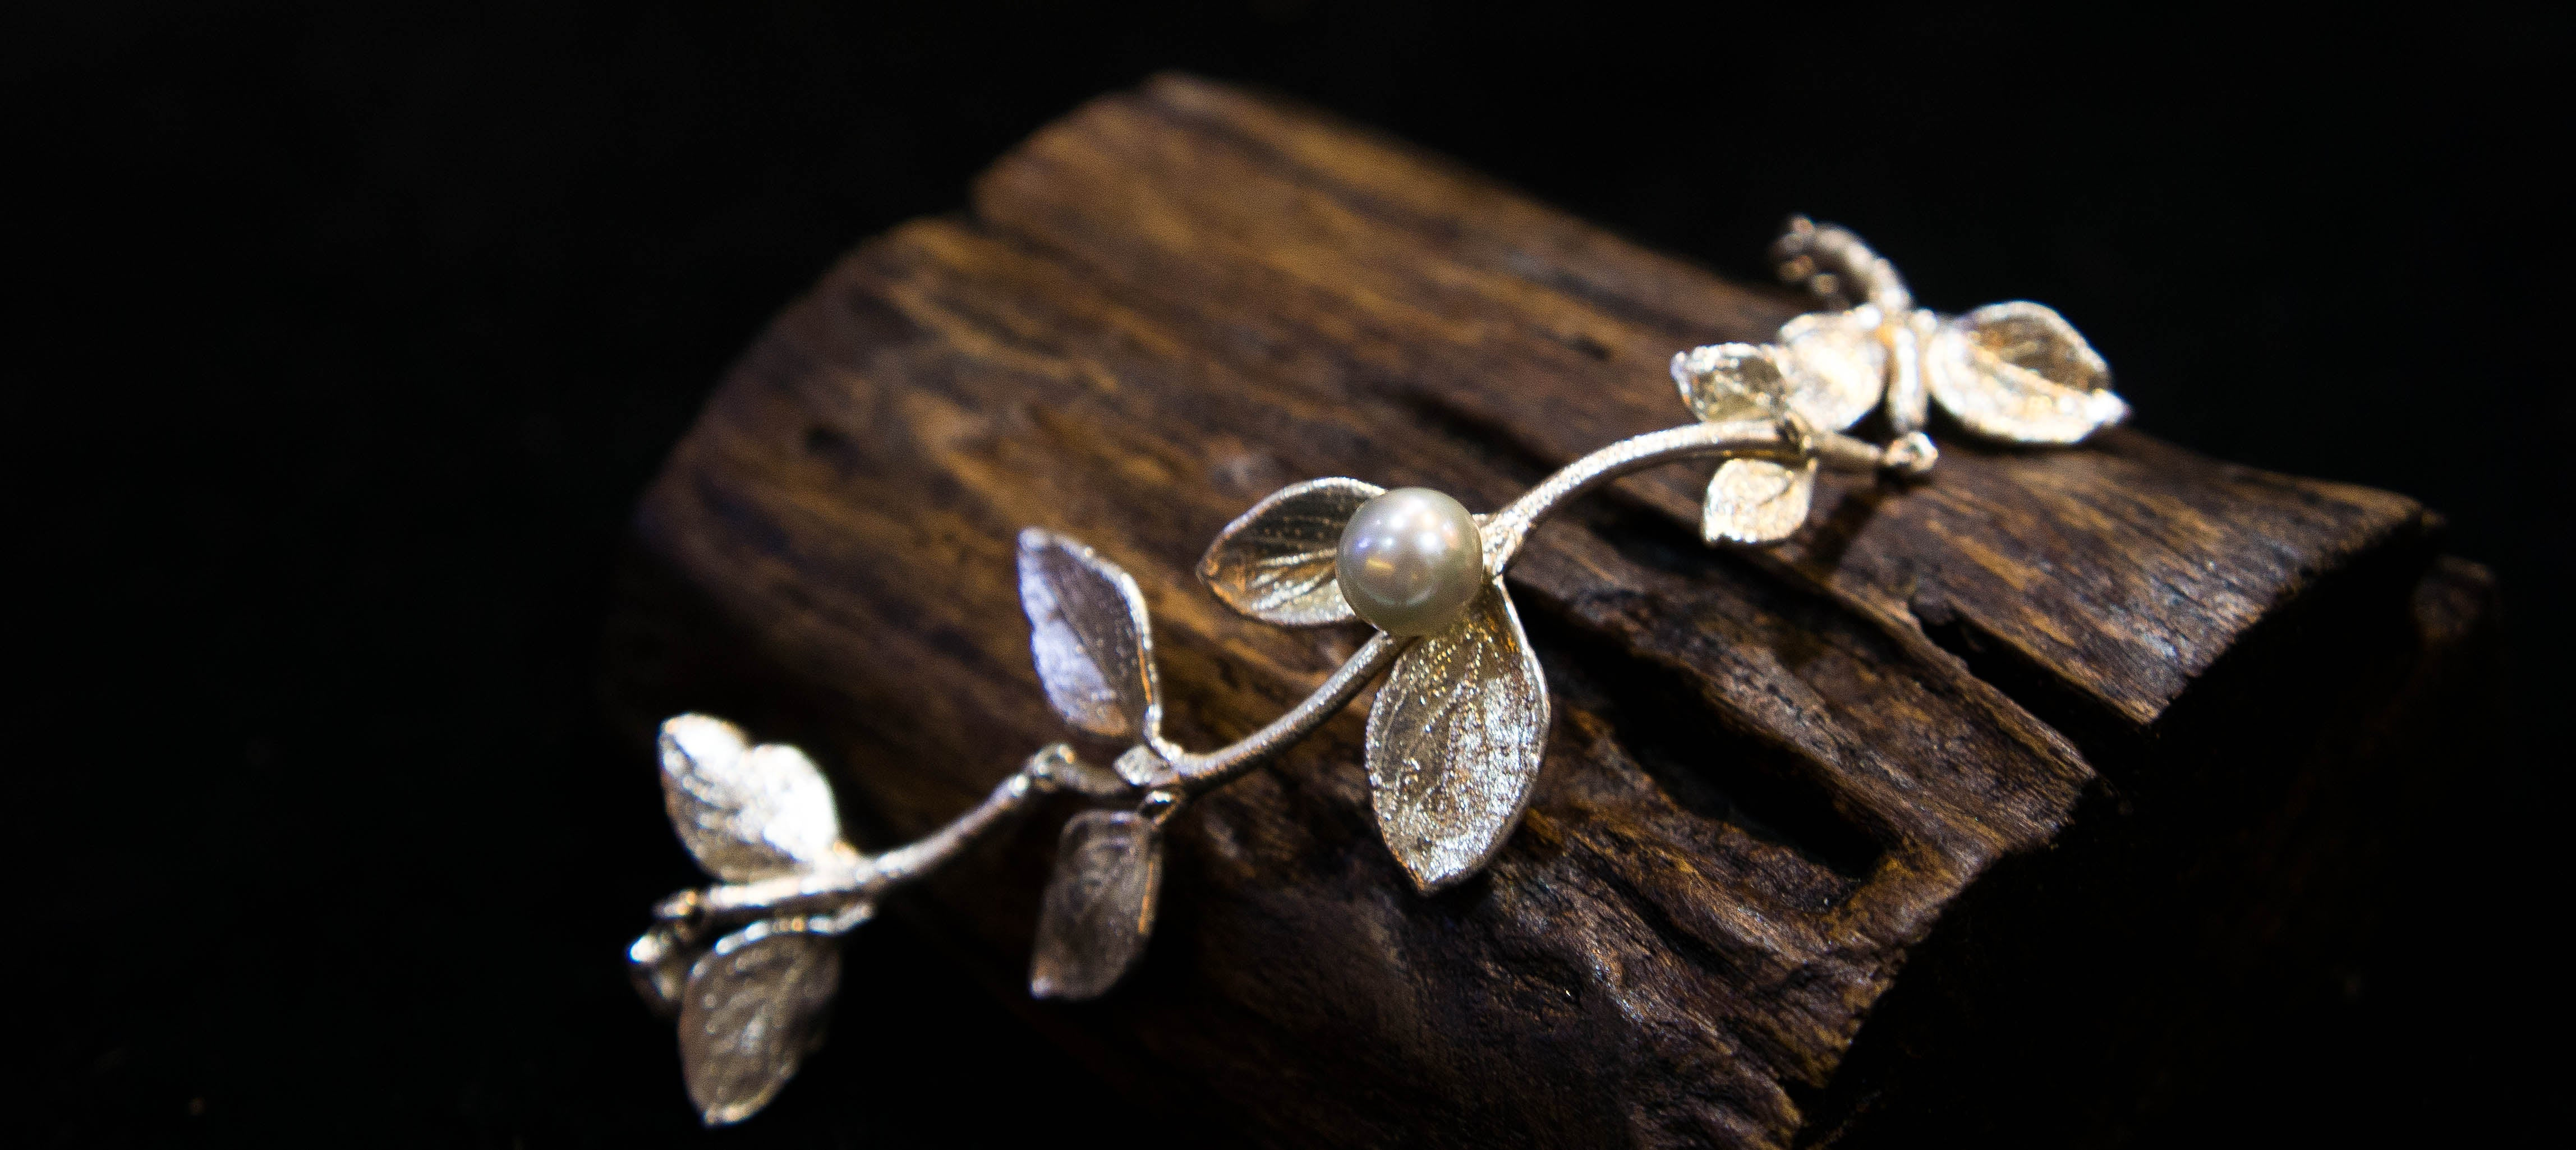 Exquisite jewellery by ROC. Nature to Treasure.